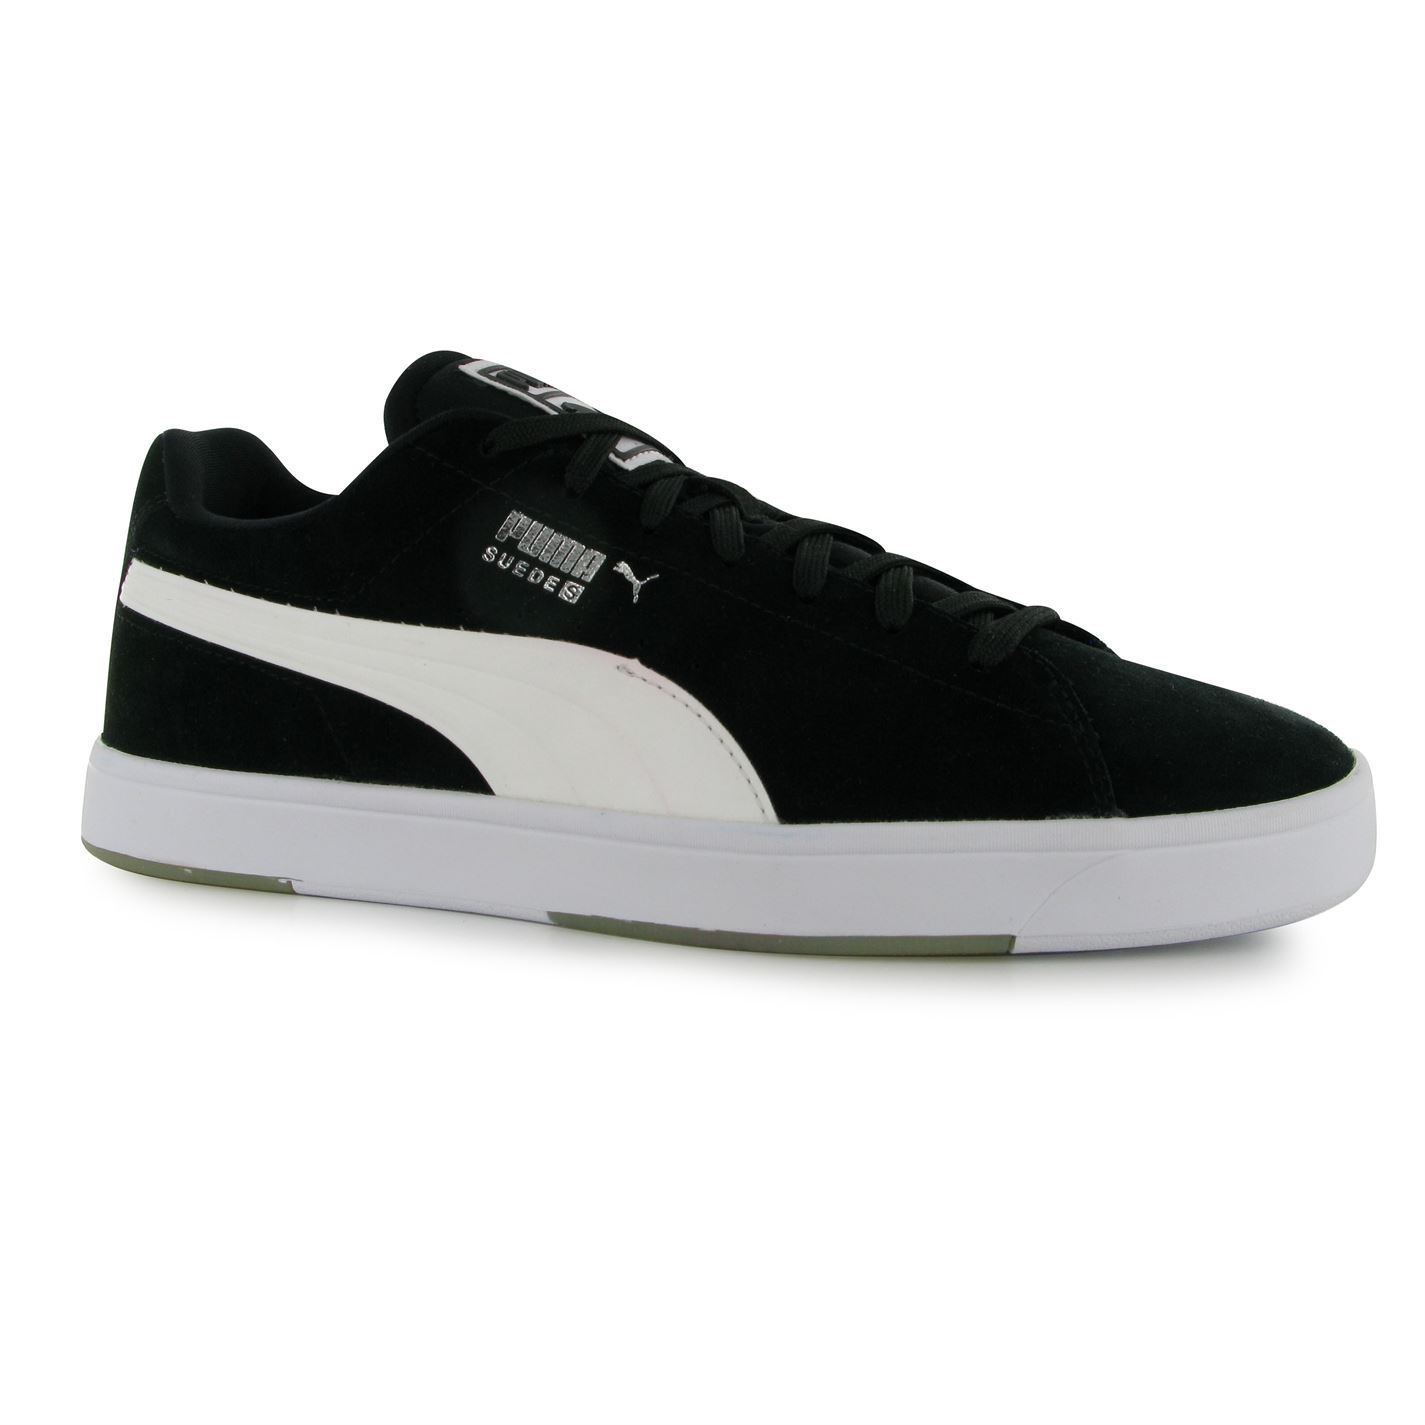 puma suede s junior boys trainers kids ebay. Black Bedroom Furniture Sets. Home Design Ideas